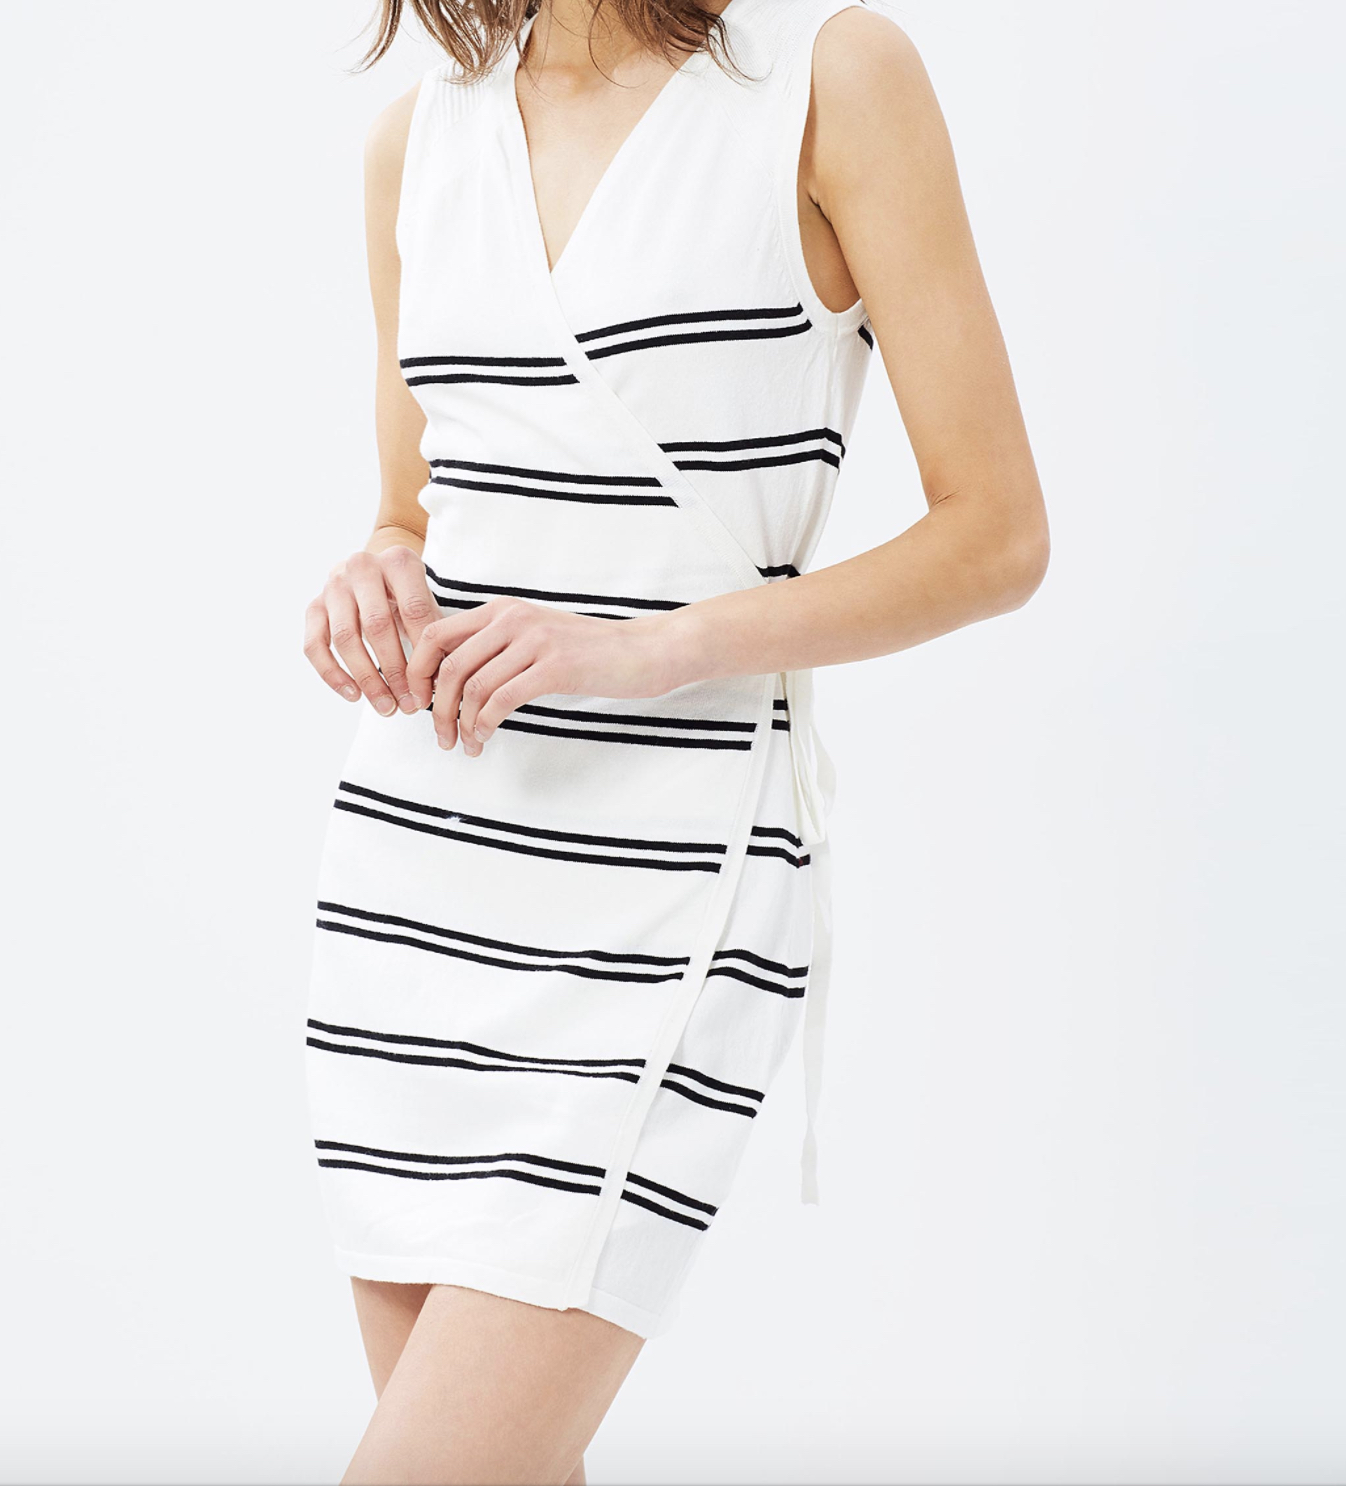 Staple the Label now or never wrap knit dress $89.95